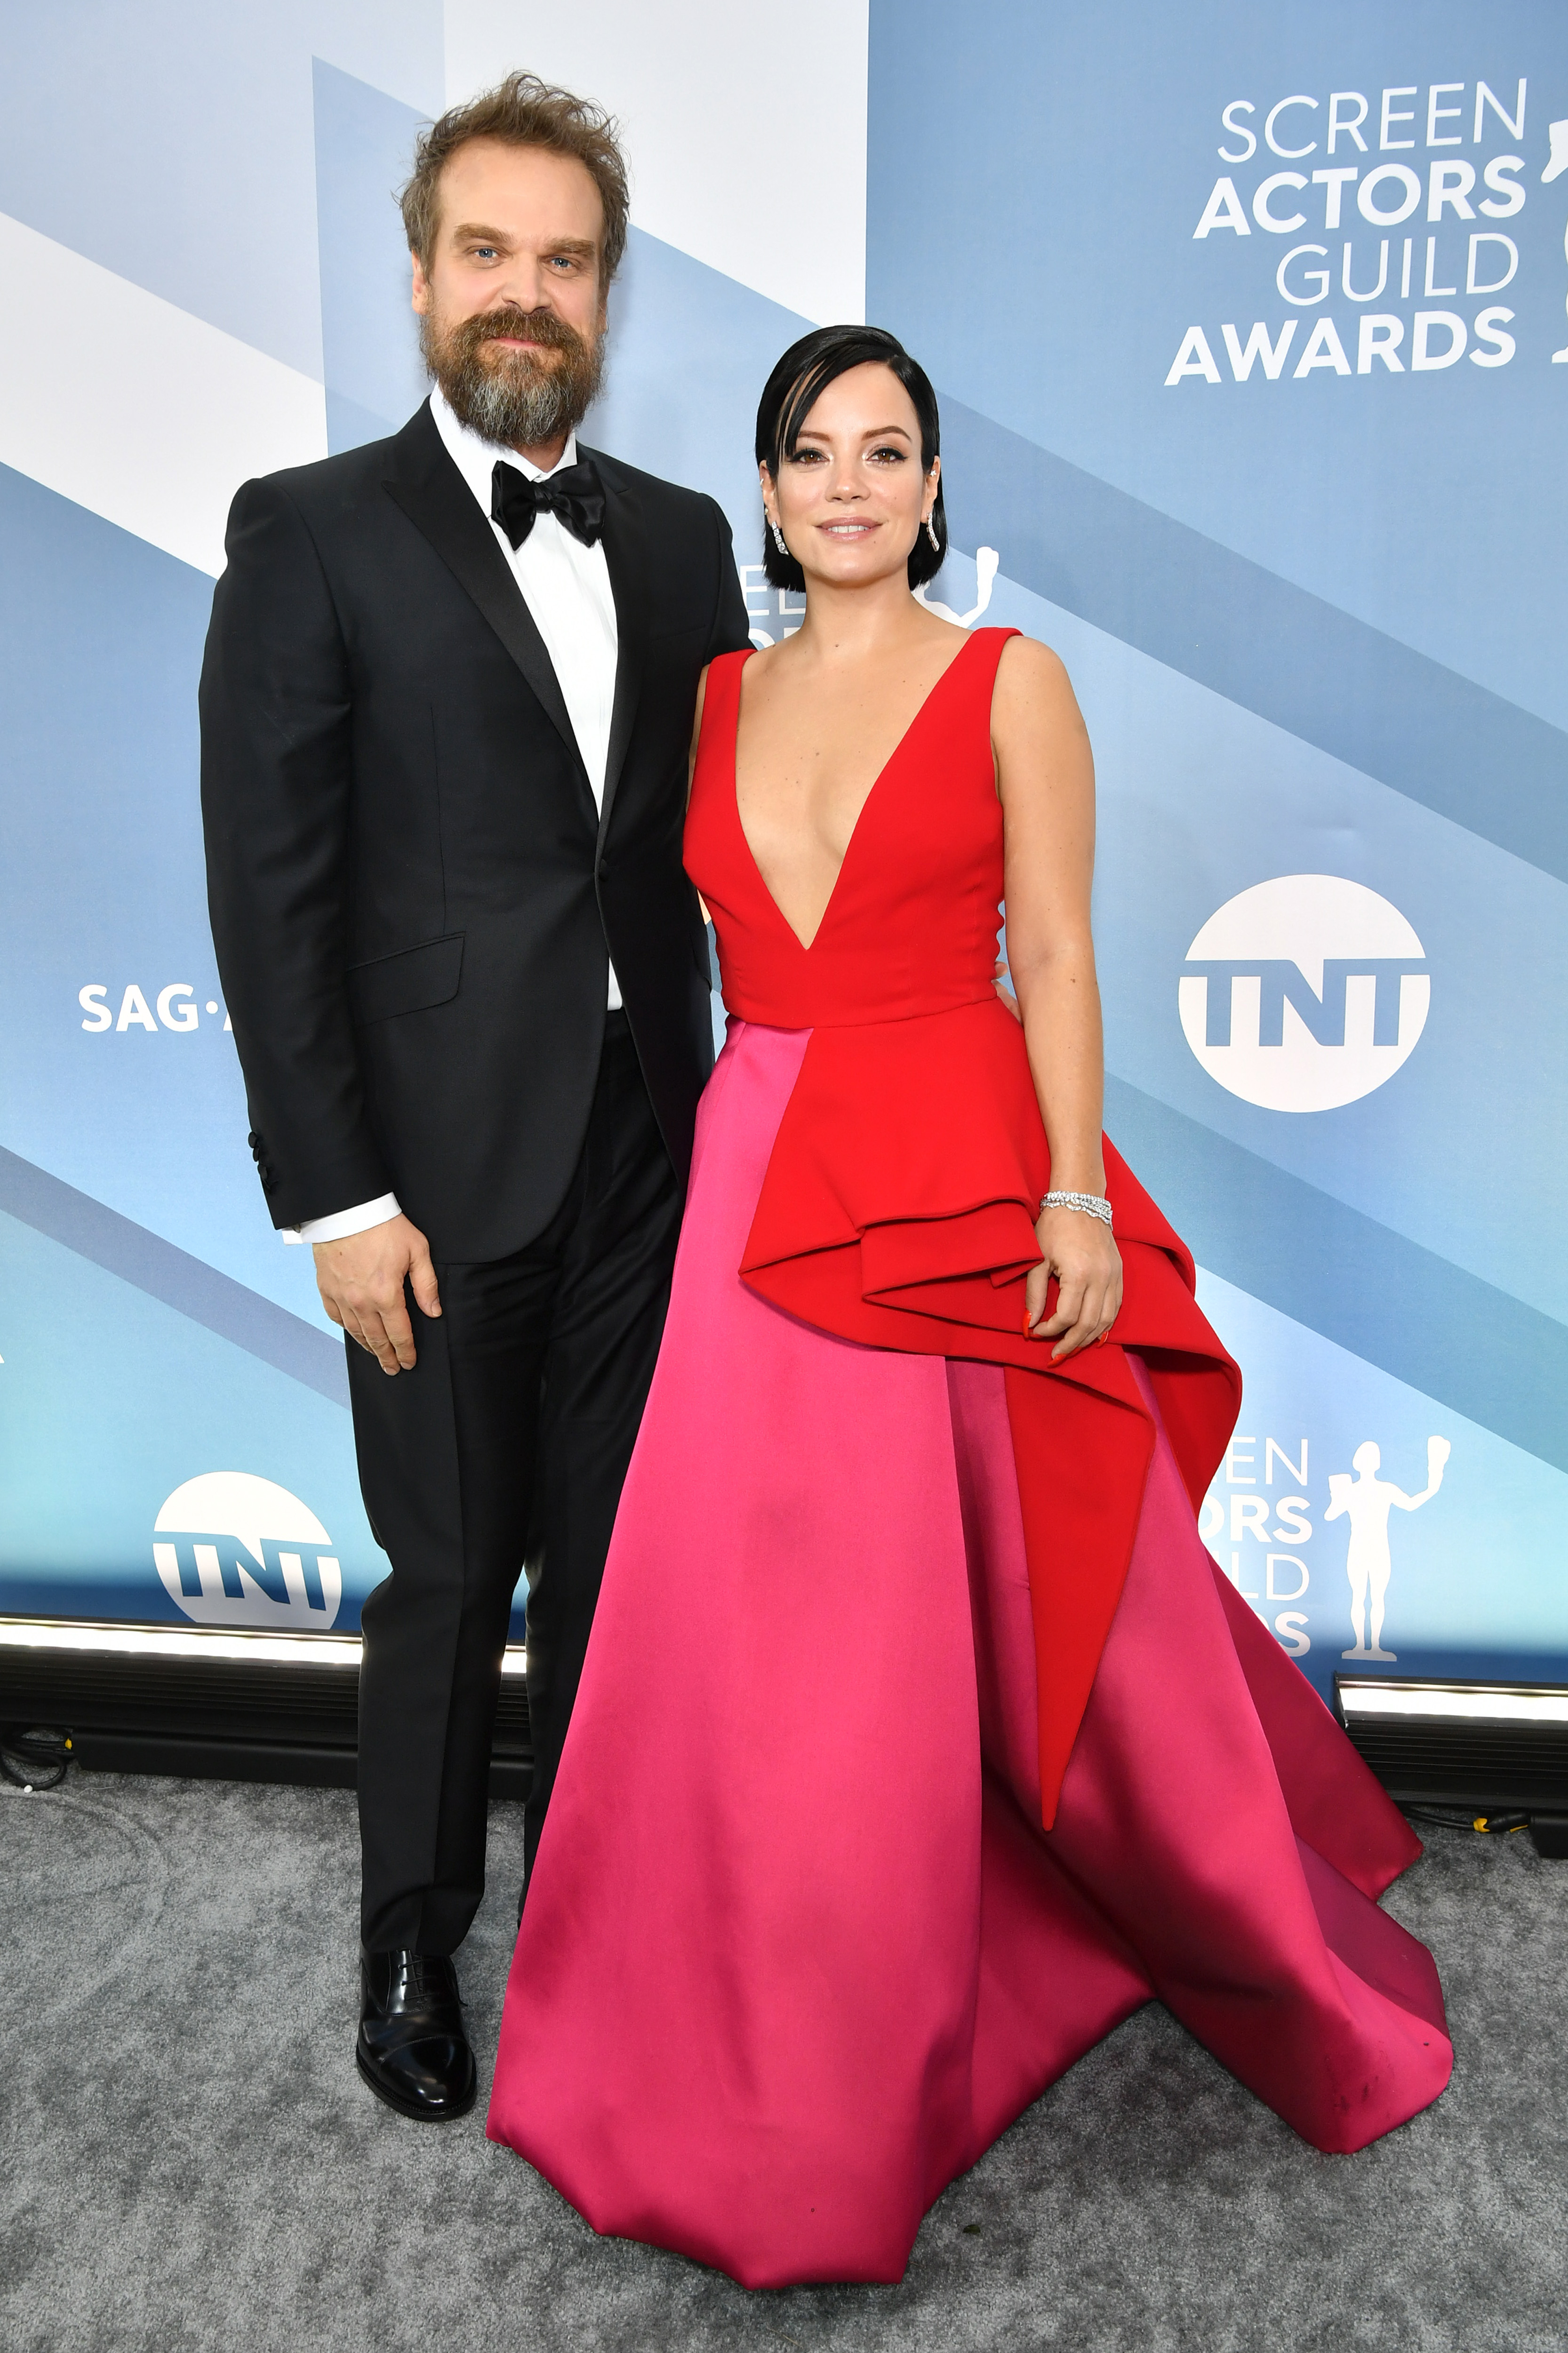 LOS ANGELES, CALIFORNIA - JANUARY 19: David Harbour and Lily Allen attend the 26th Annual Screen ActorsGuild Awards at The Shrine Auditorium on January 19, 2020 in Los Angeles, California. (Photo by Amy Sussman/WireImage)